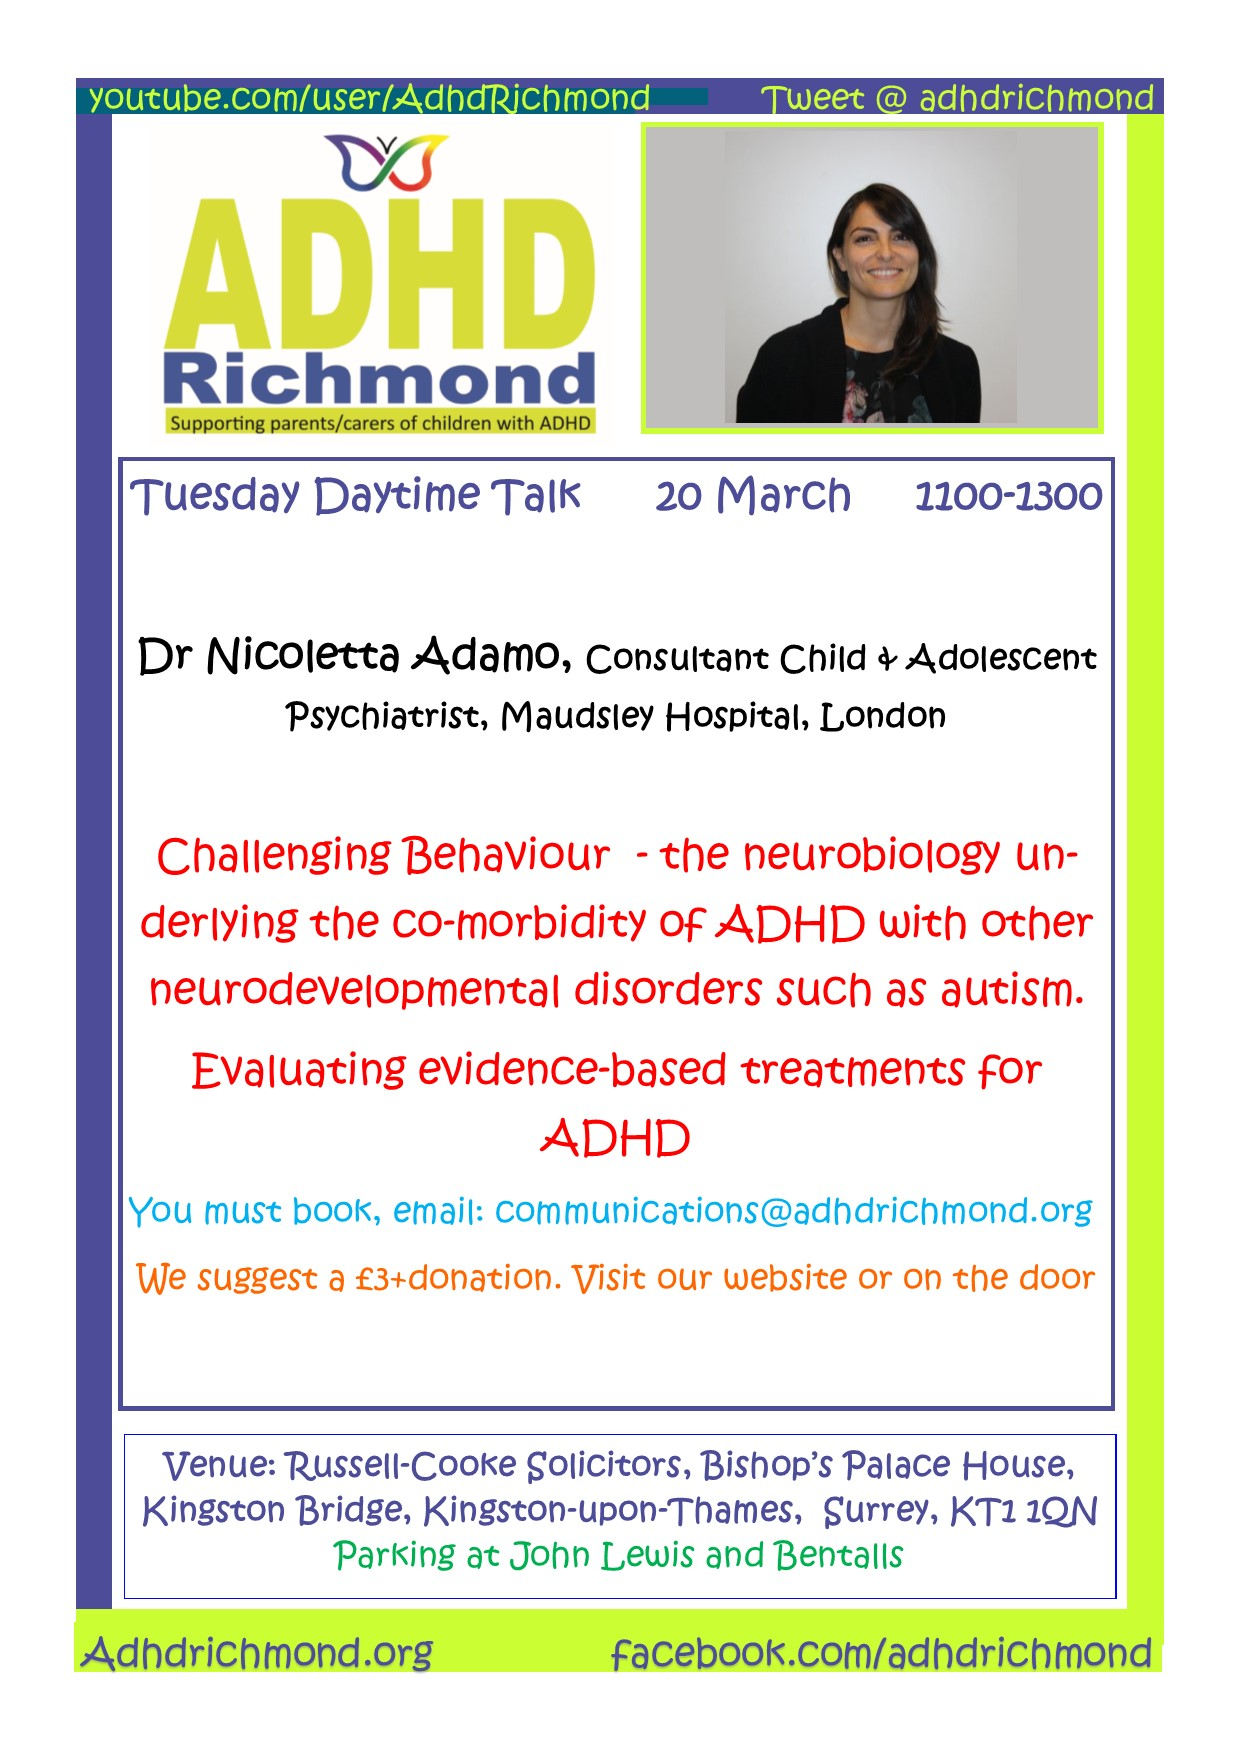 ADHD Richmond free daytime Talk on ADHD & Challenging Behaviour